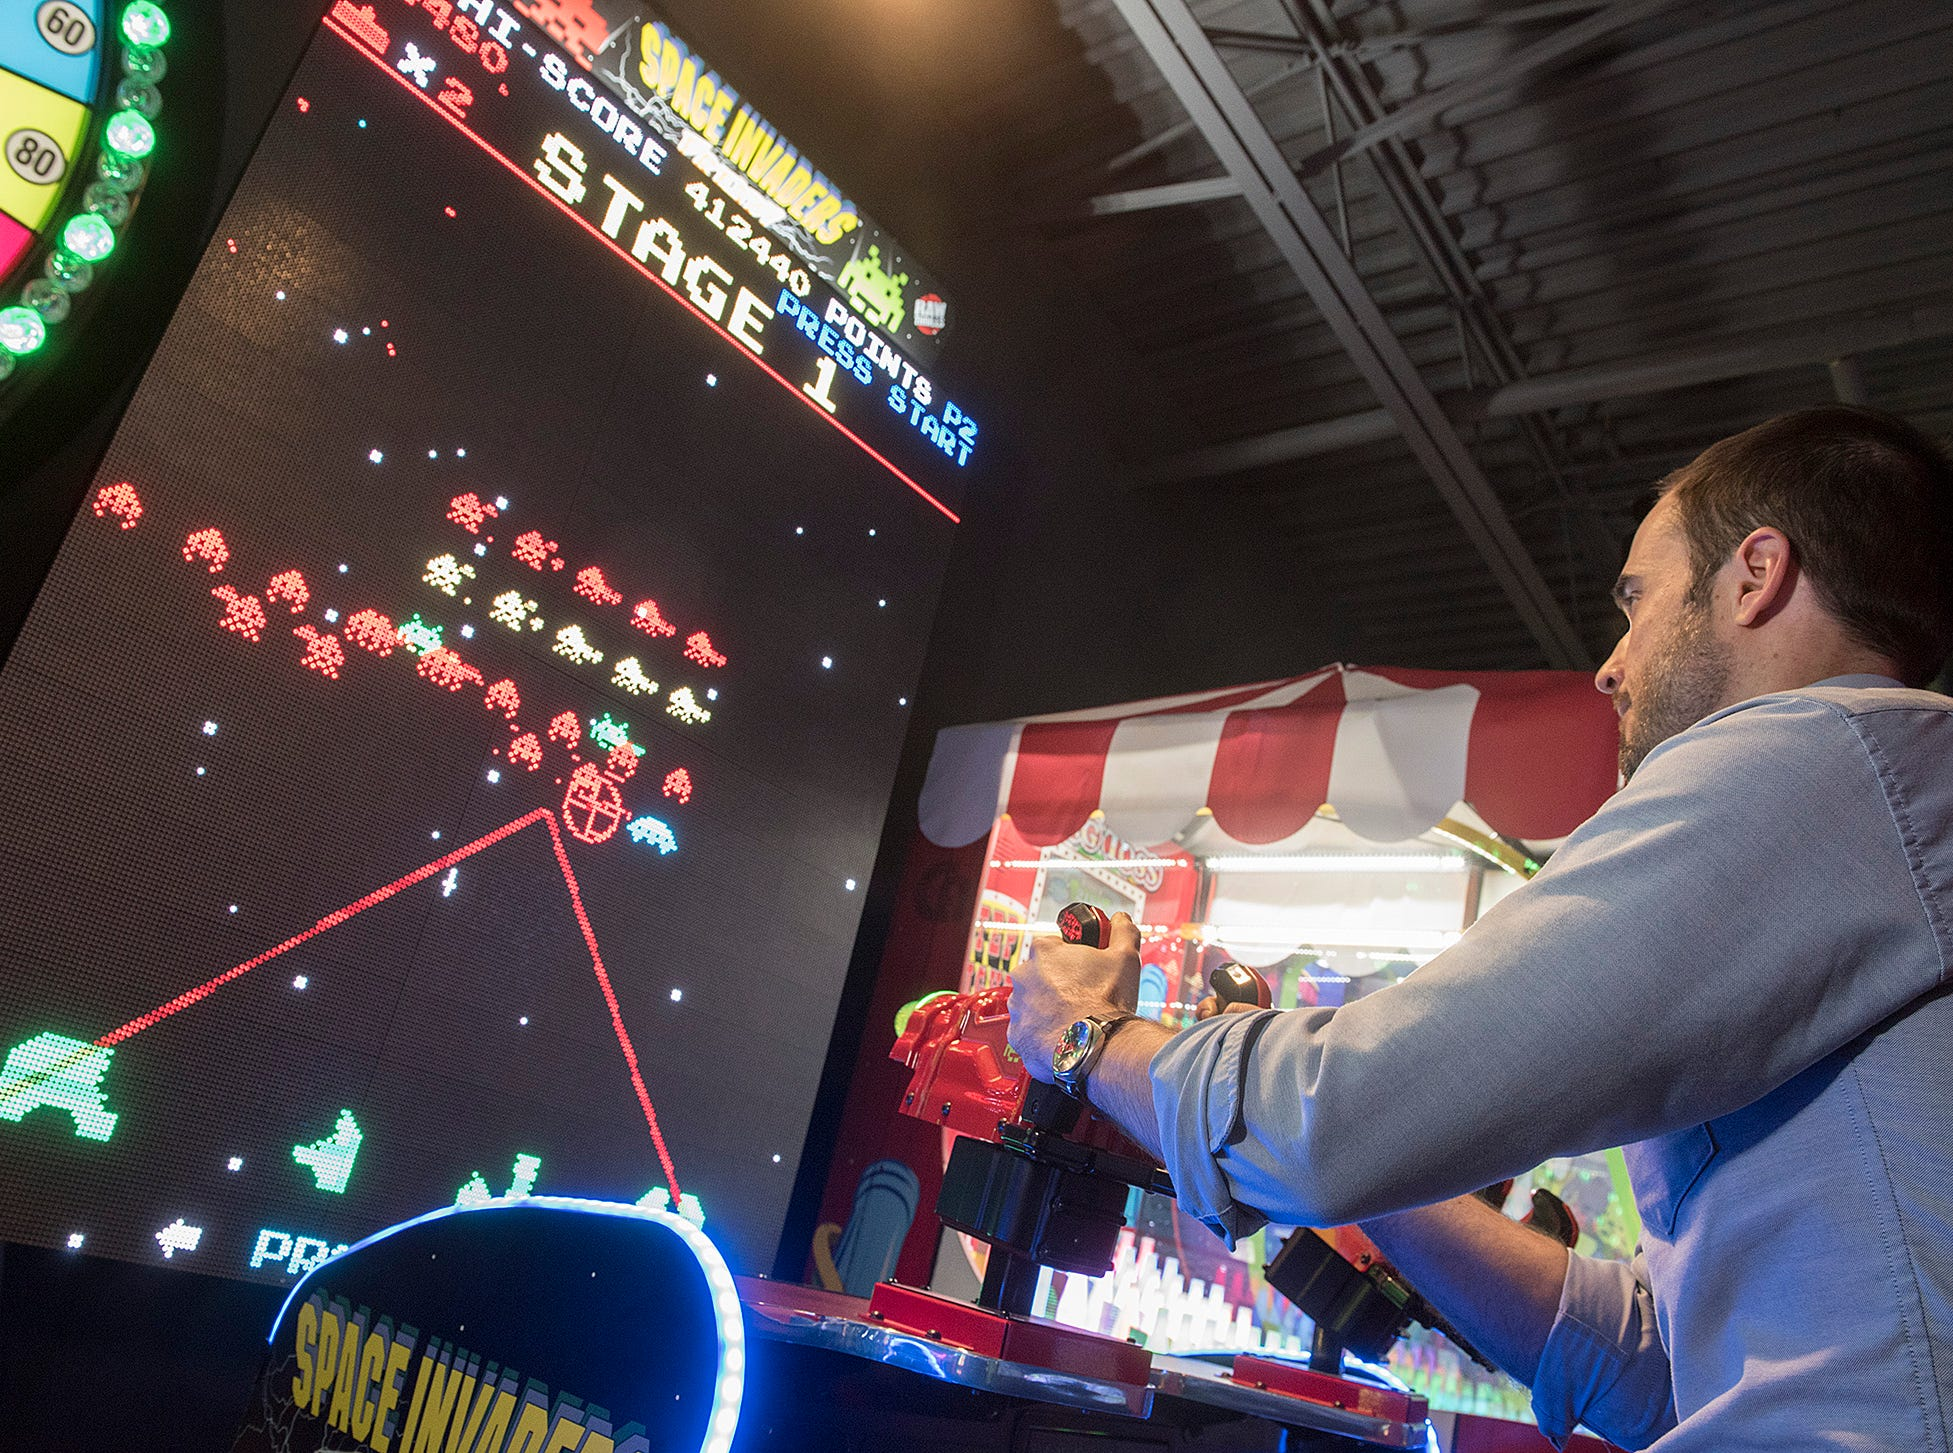 Michael Shearer plays Space Invaders, his personal fave.